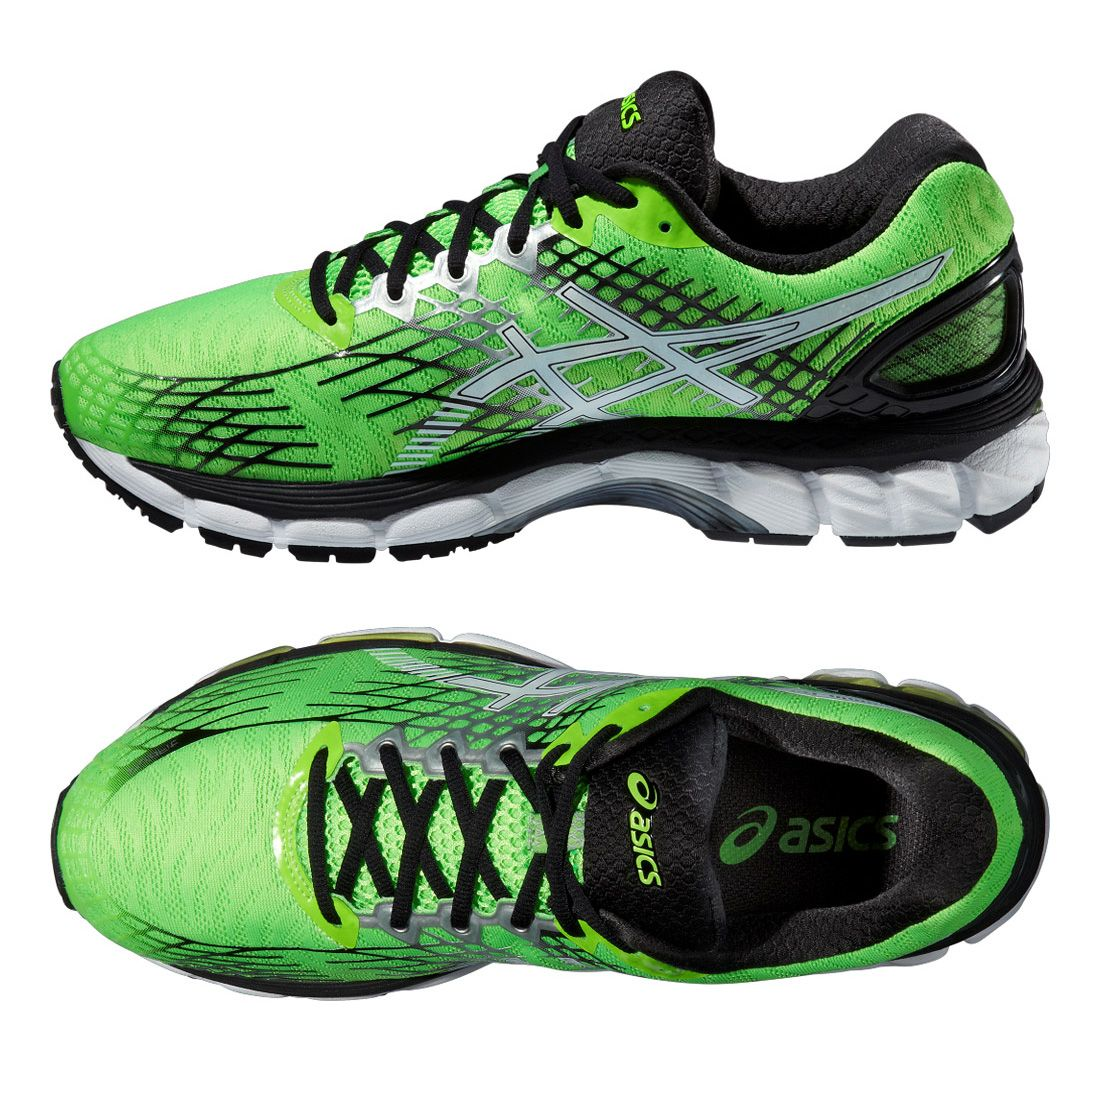 Asics Gel Nimbus 17 Mens Running Shoes Aw15 Sweatband Com